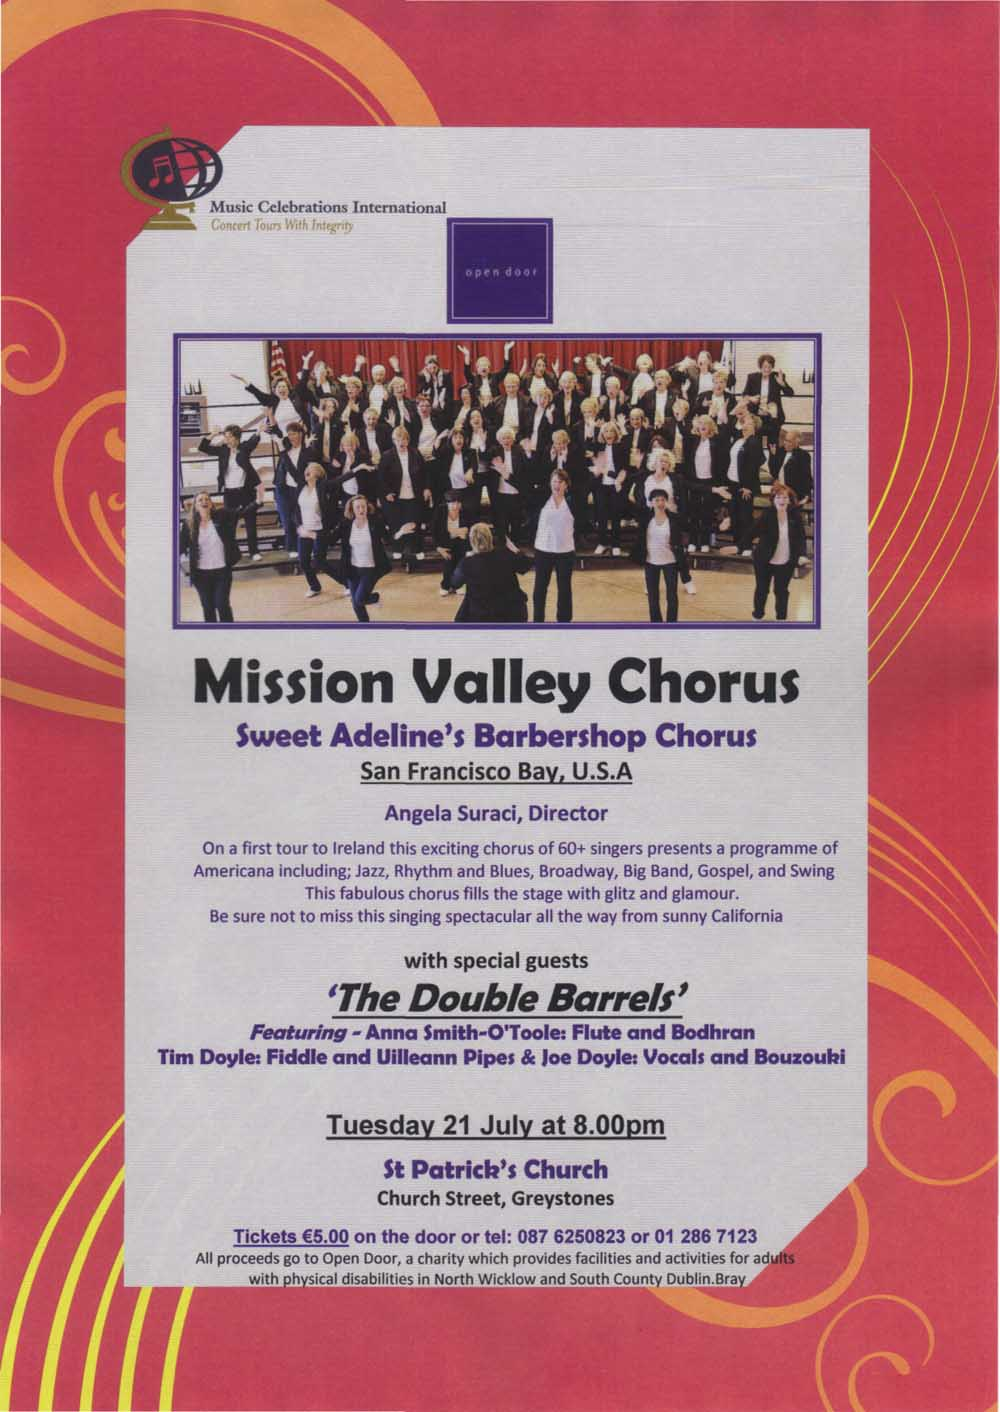 Mission Valley Chorus poster image